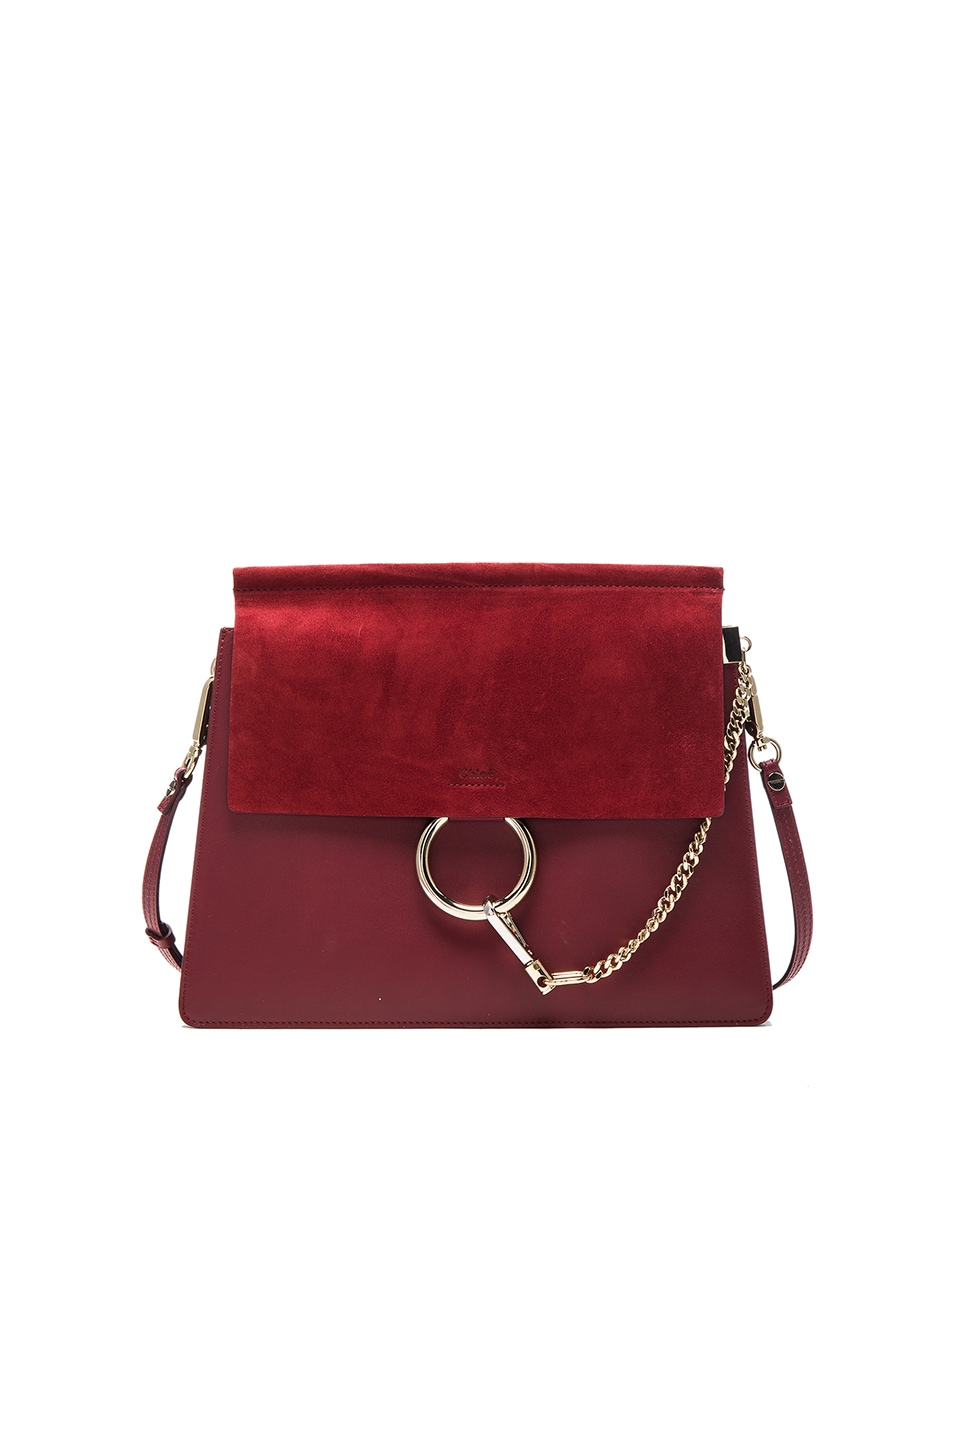 Image 1 of Chloe Medium Faye Suede & Calfskin Bag in Plum Purple